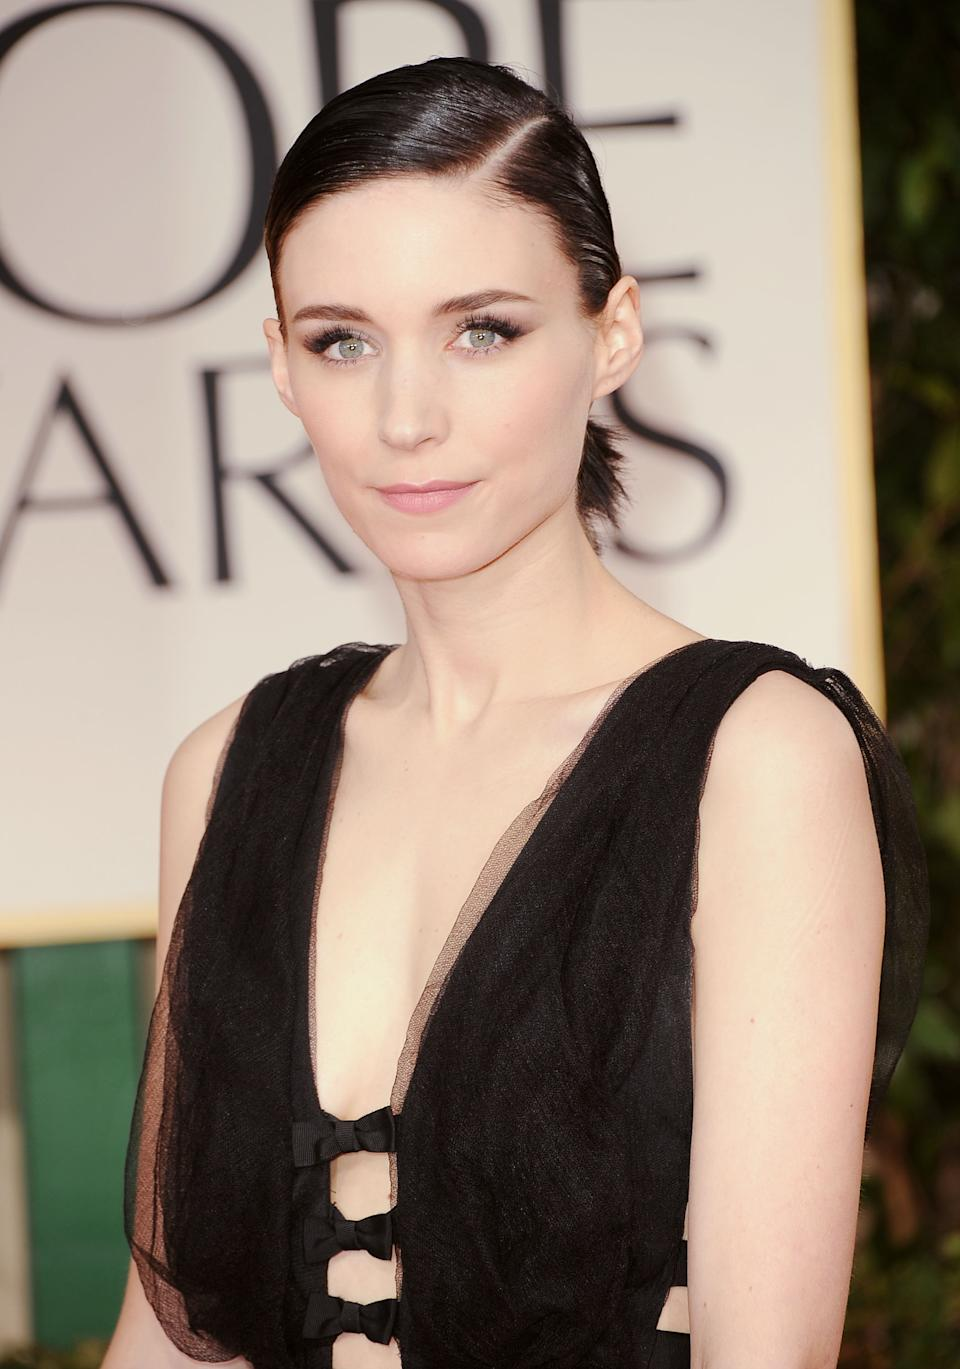 """Newcomer Rooney Mara is nominated for her role as fierce computer hacker Lisbeth Salander in the film adaptation of """"The Girl With the Dragon Tattoo."""" (Photo: Jason Merritt/Getty)"""